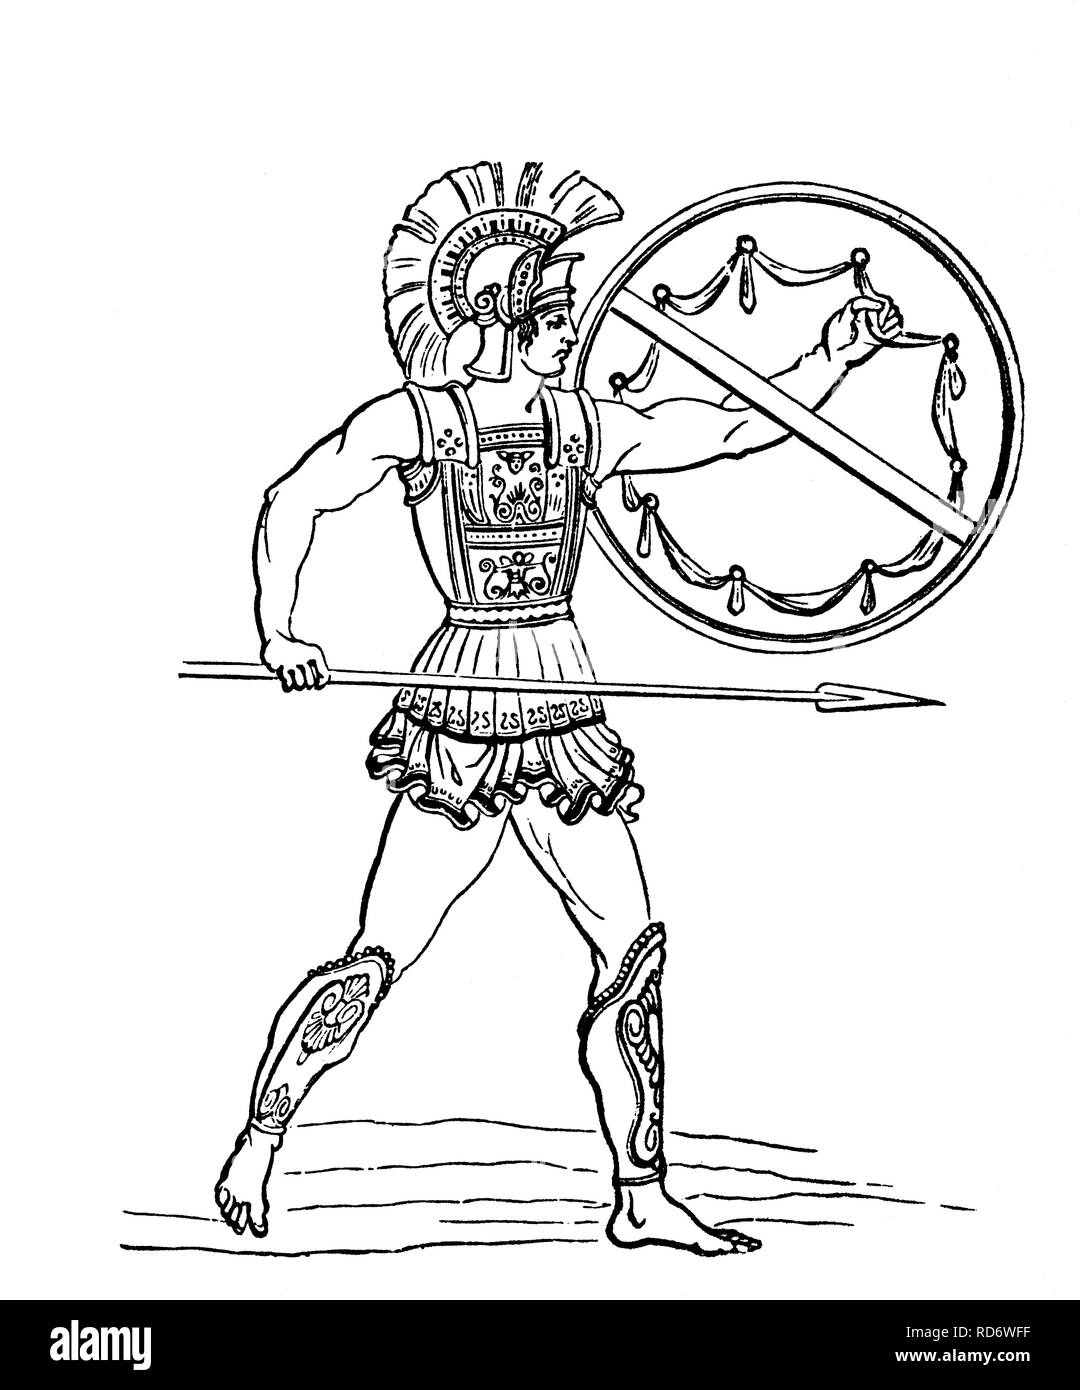 A Hoplite, a citizen-soldier of one of the Ancient Greek city-states of the archaic and classical period, woodcut from 1880 - Stock Image